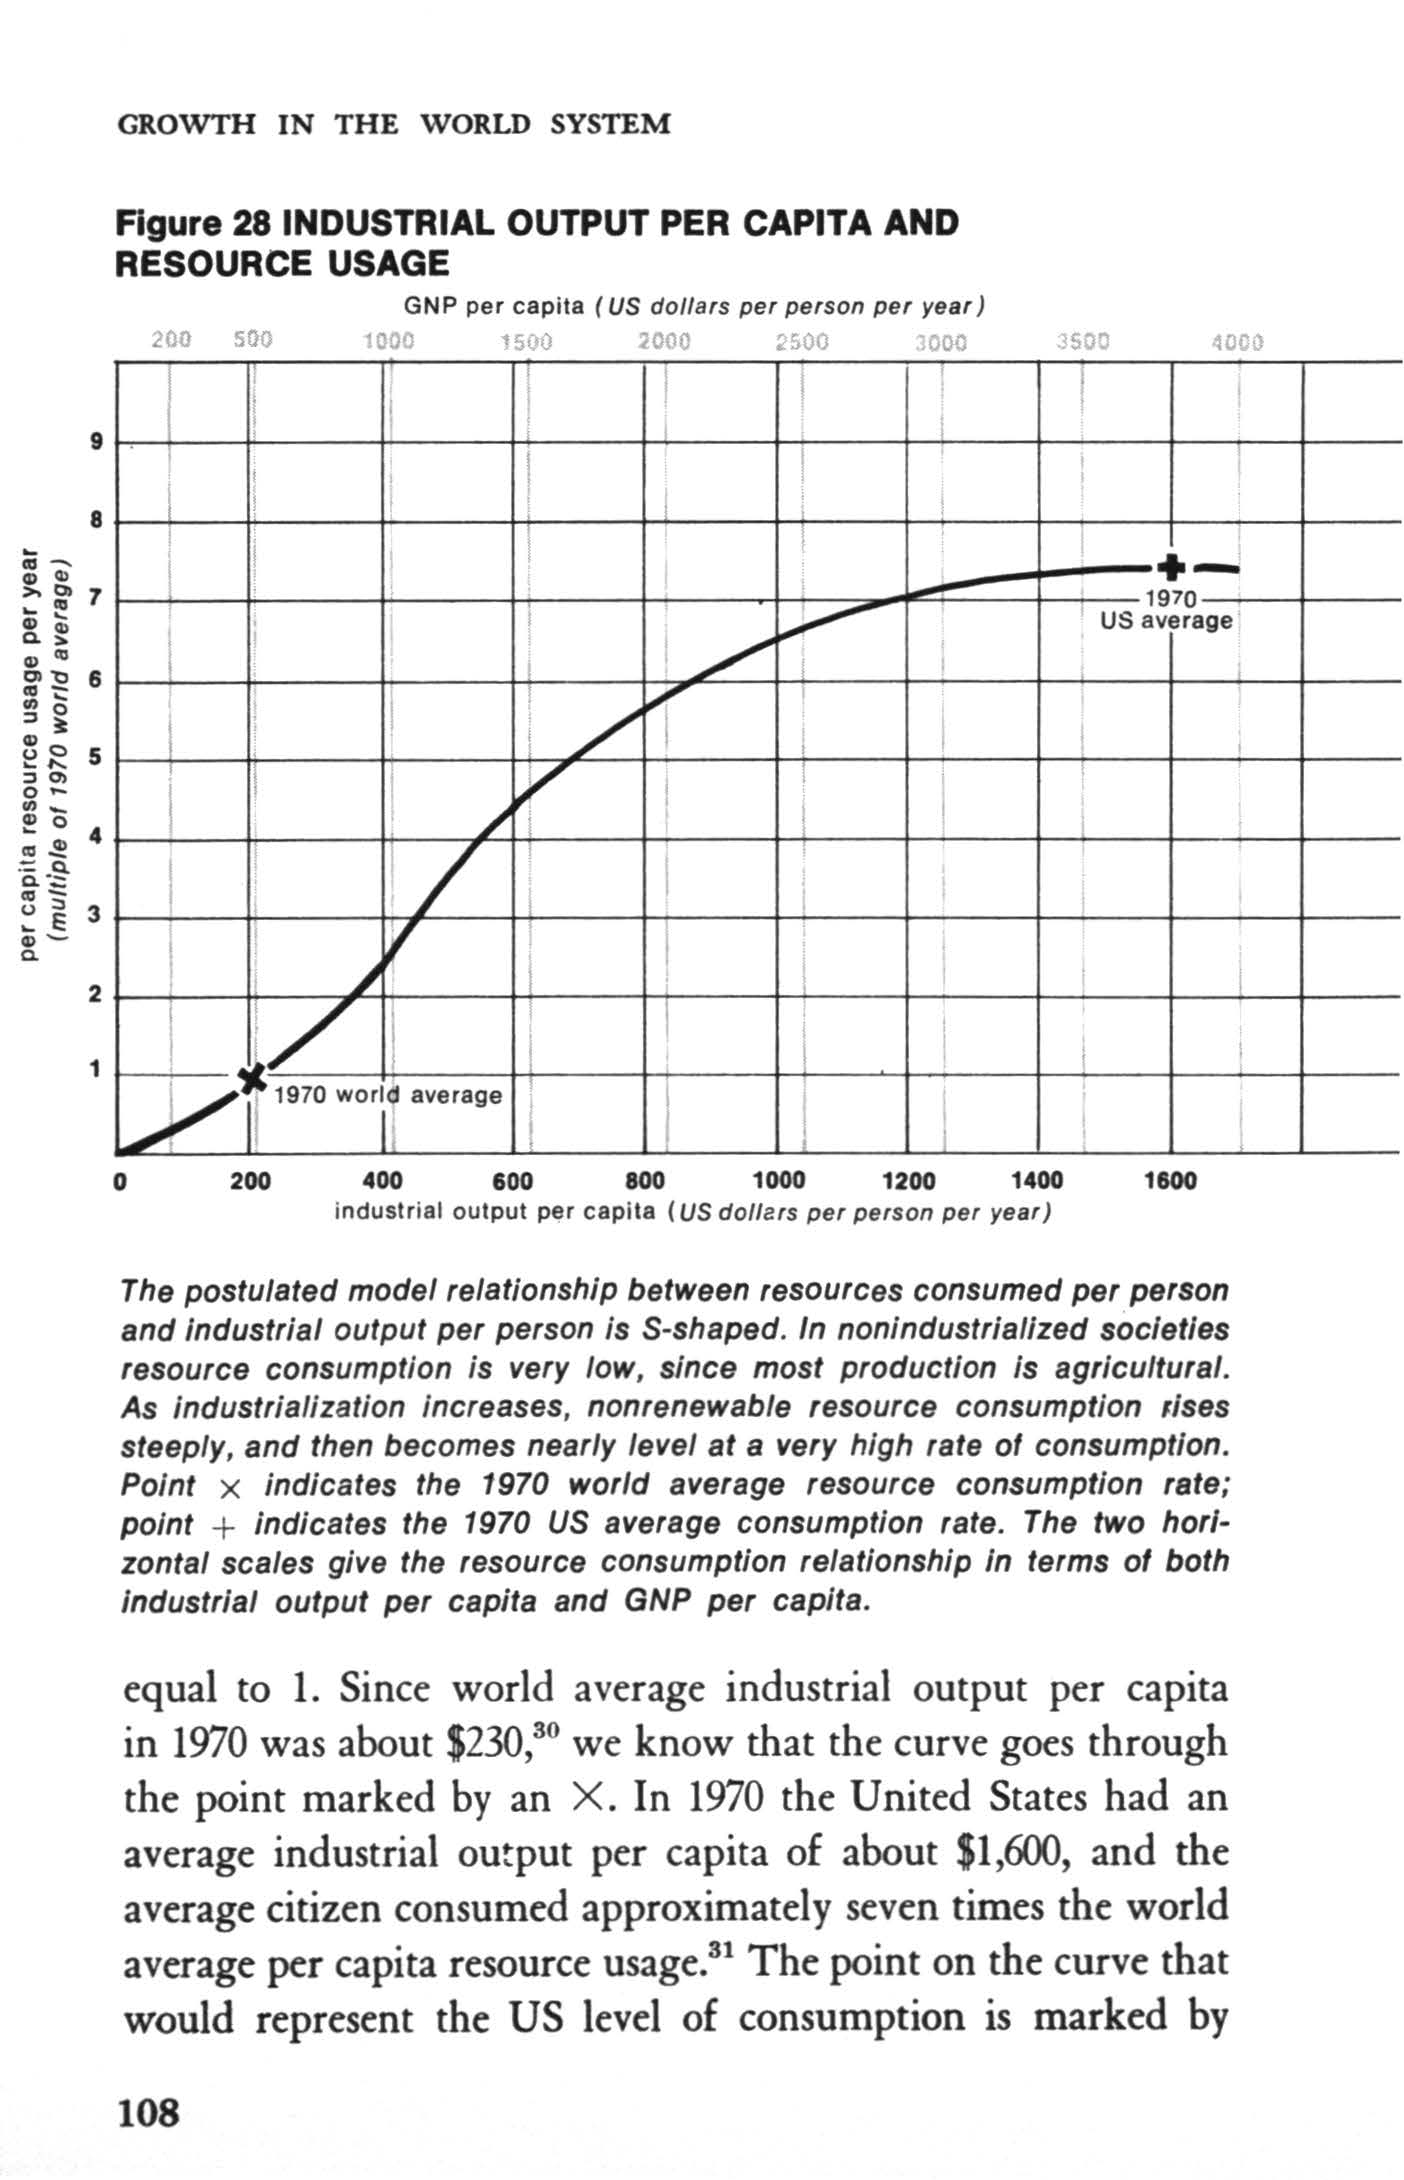 GROWTH N THE WORLD SYSTEM 2 Figure 281NDUSTRAL OUTPUT PER CAPTA AND RESOURCE USAGE GNP per capita (US dollars per person per year) 200 sao 1000 1500 2000 2500 3000 3500 4000 ' +- i US average i li /